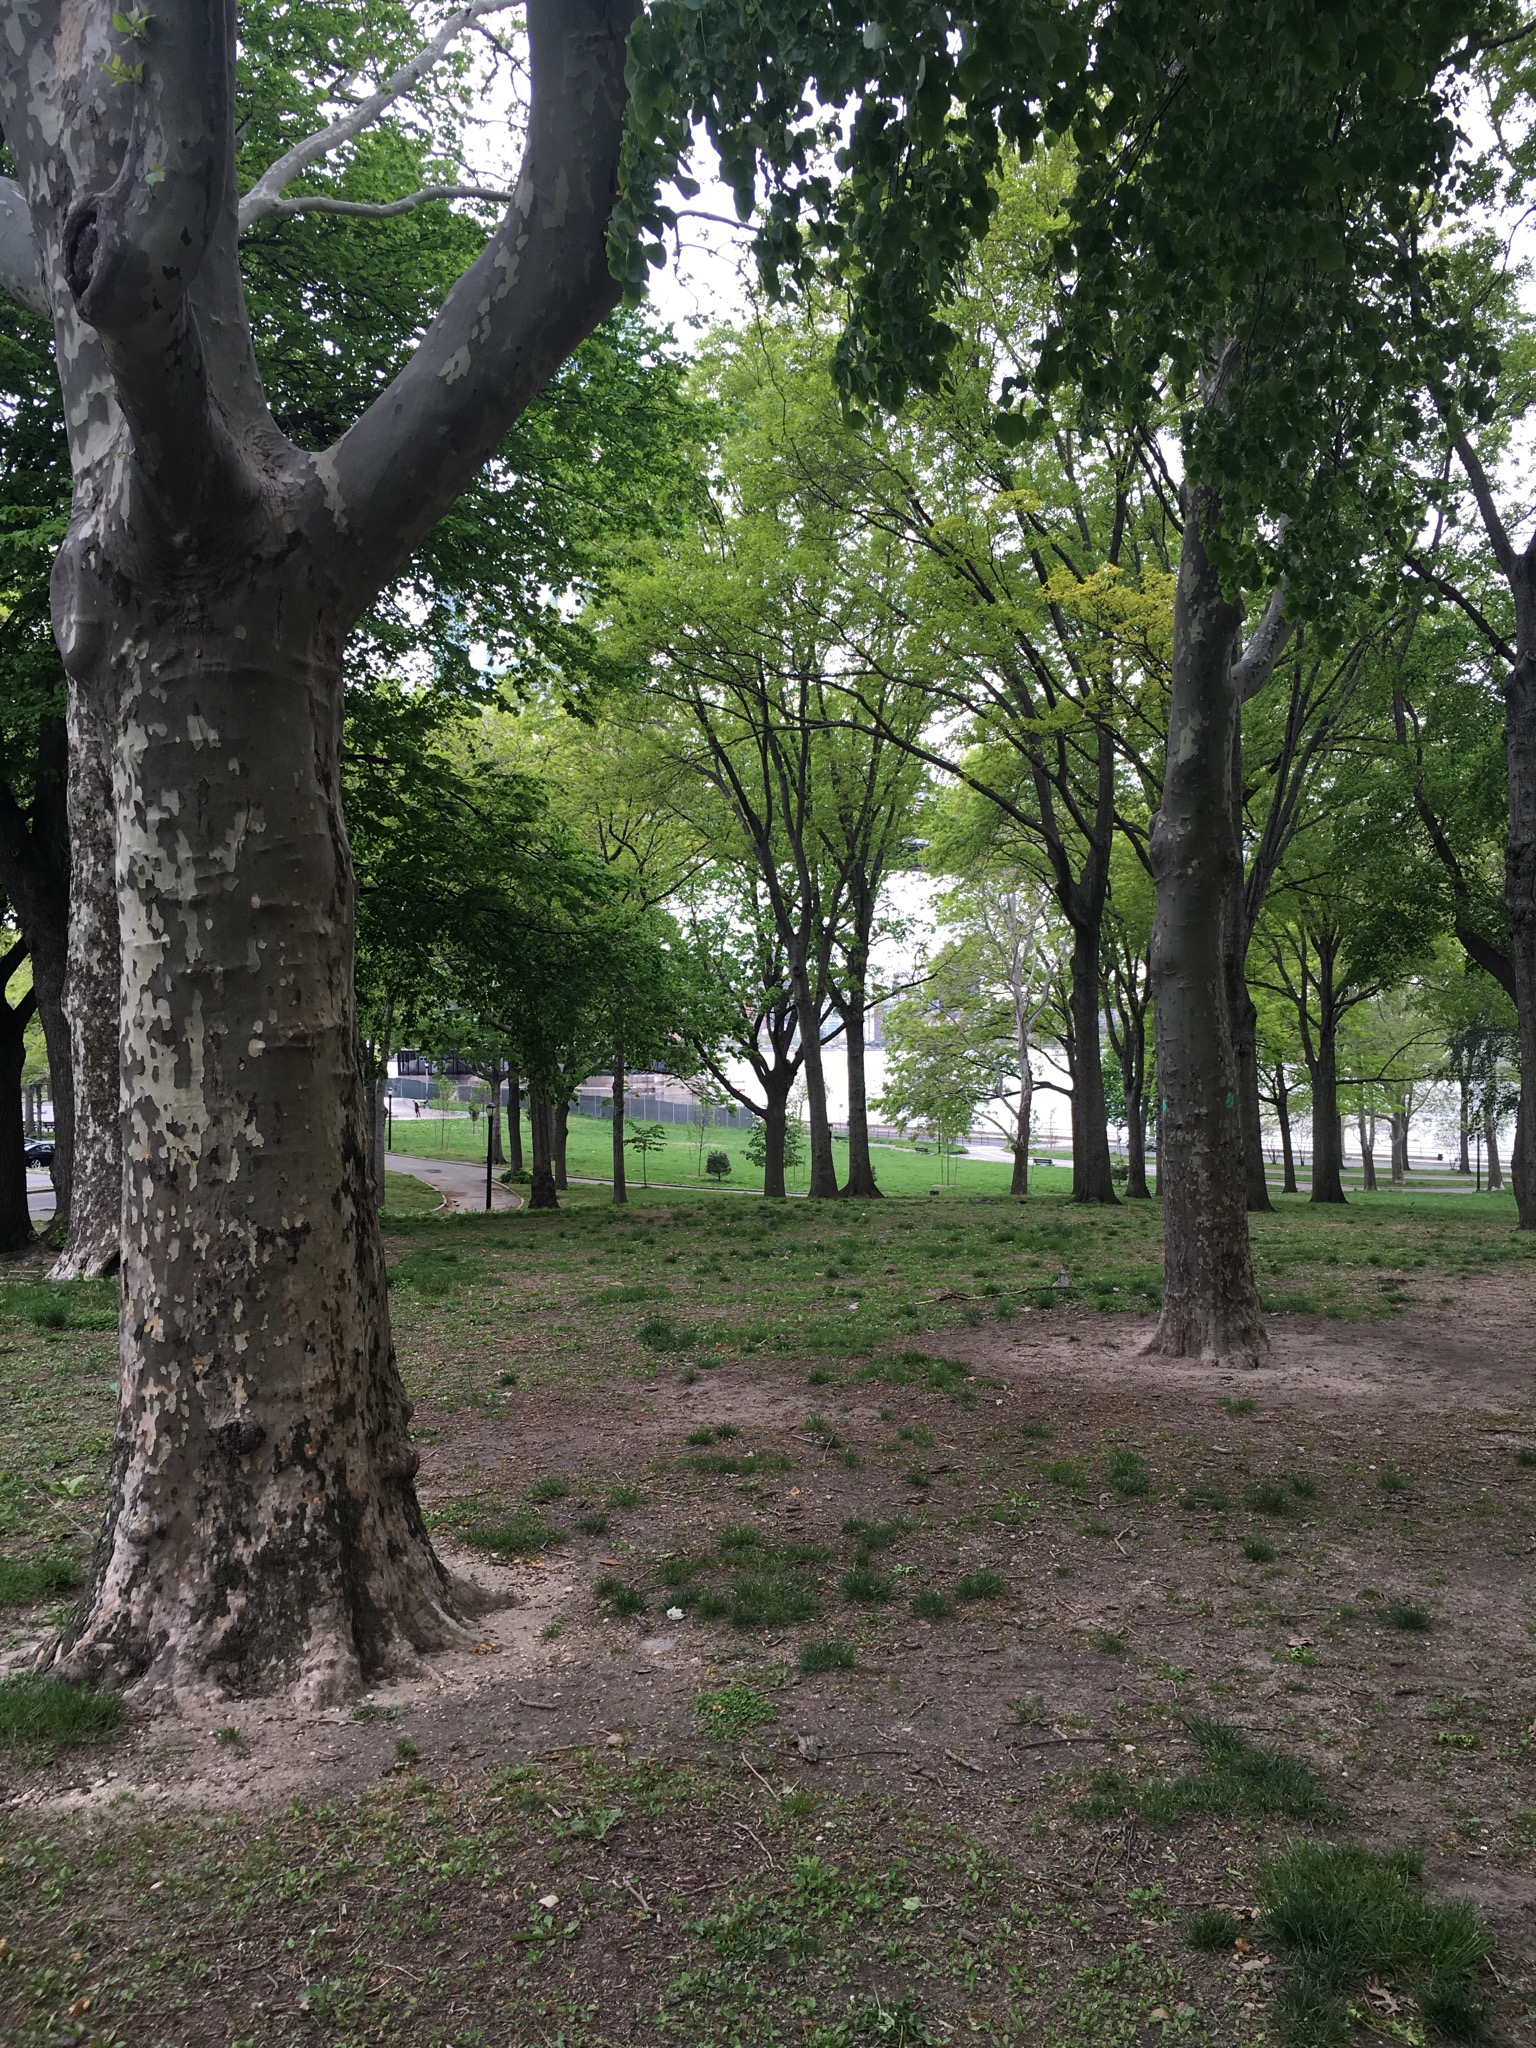 View of the trees from Astoria Park